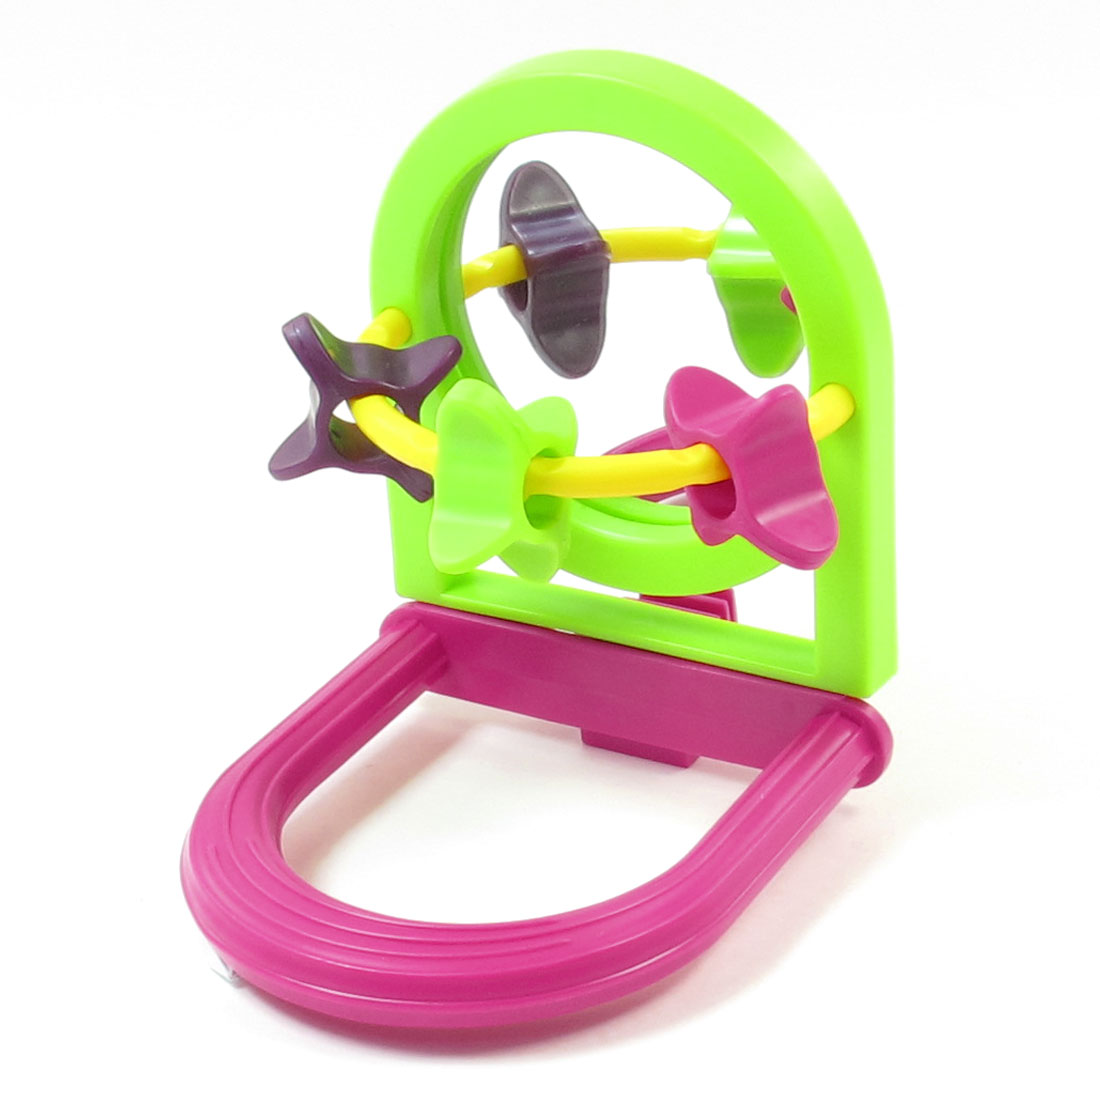 Mirror Plastic Small Whell Entertained Funny Toys Green Fuchsia for Birds